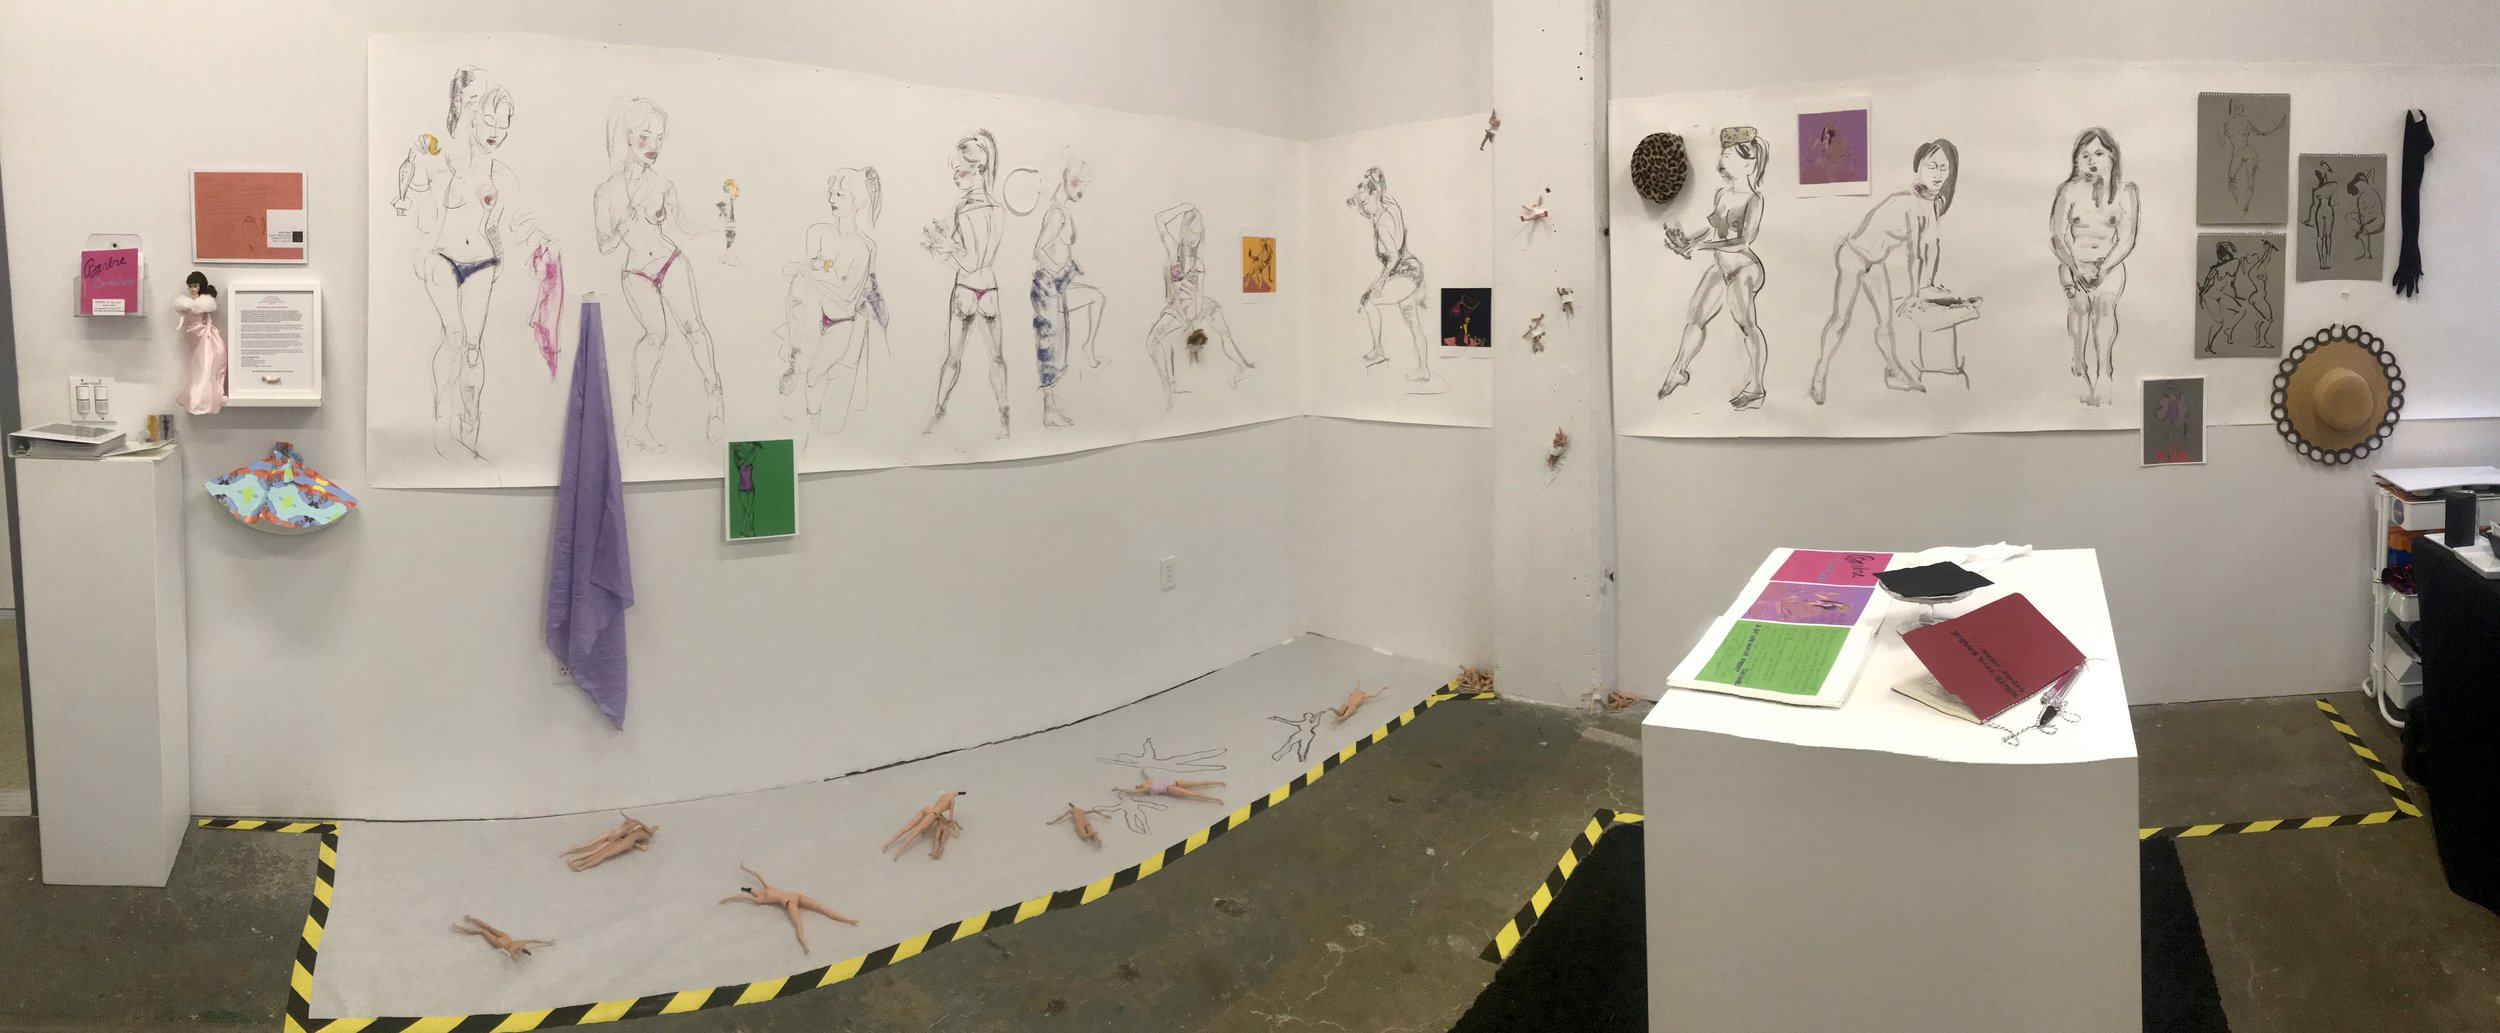 A work-in-progress art installation by Susan R. Kirshenbaum during her Black & White Projects (BWP) Art Residency, April 2019, San Francisco, CA